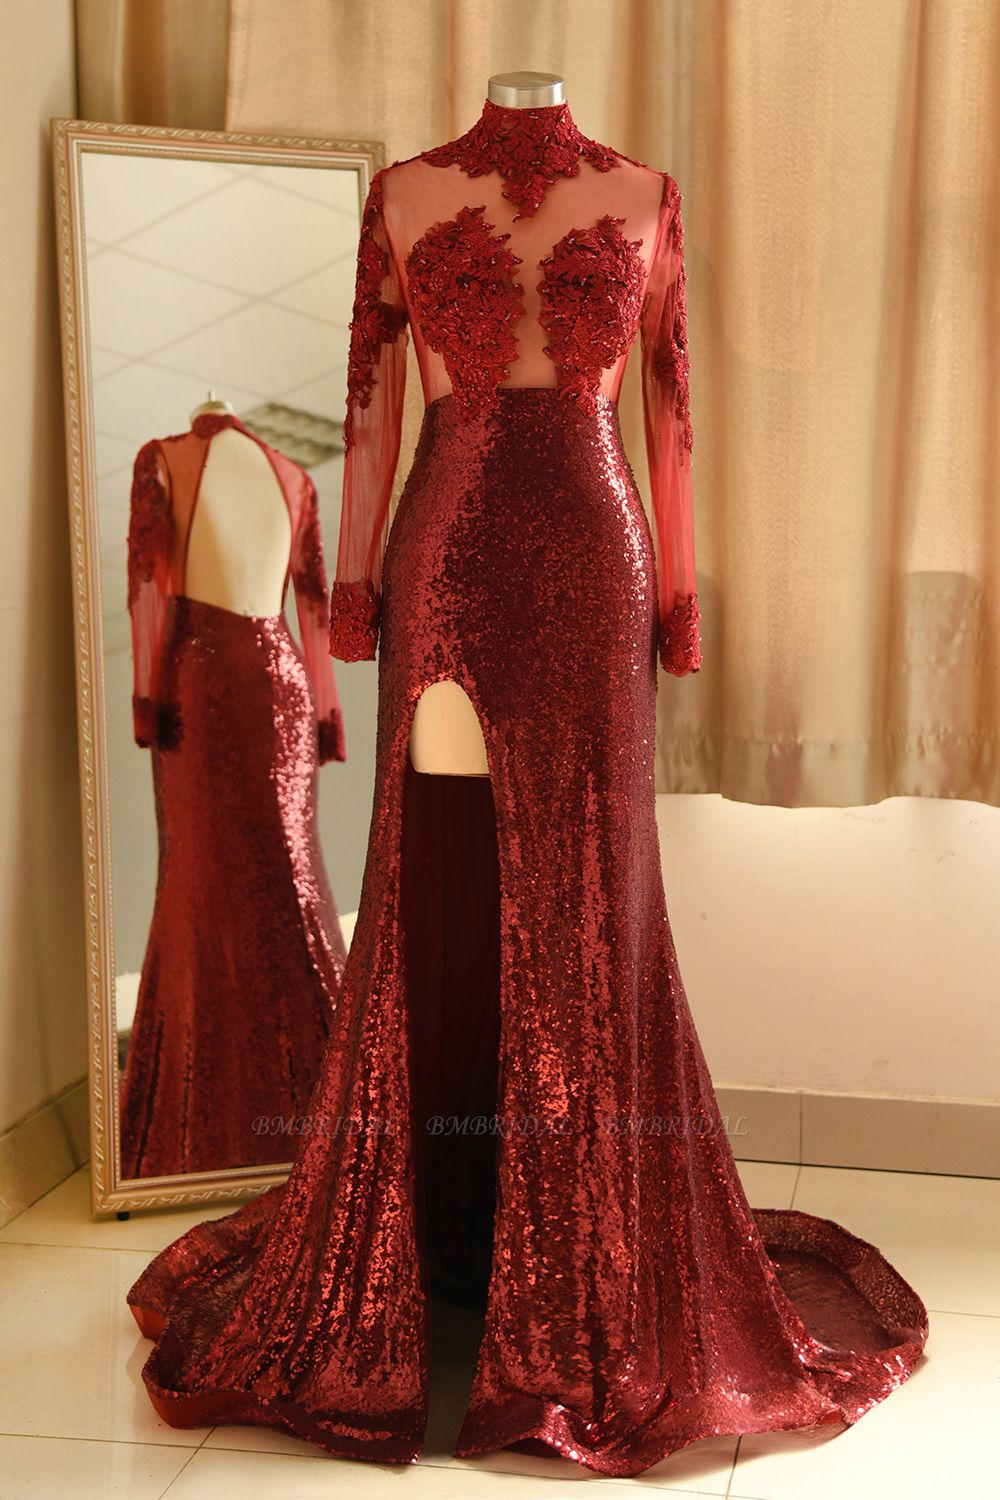 Sexy High-Neck Burgundy Sequined Slit Prom Dresses Long Sleeves Appliques Backless Formal Dress with Sheer Top